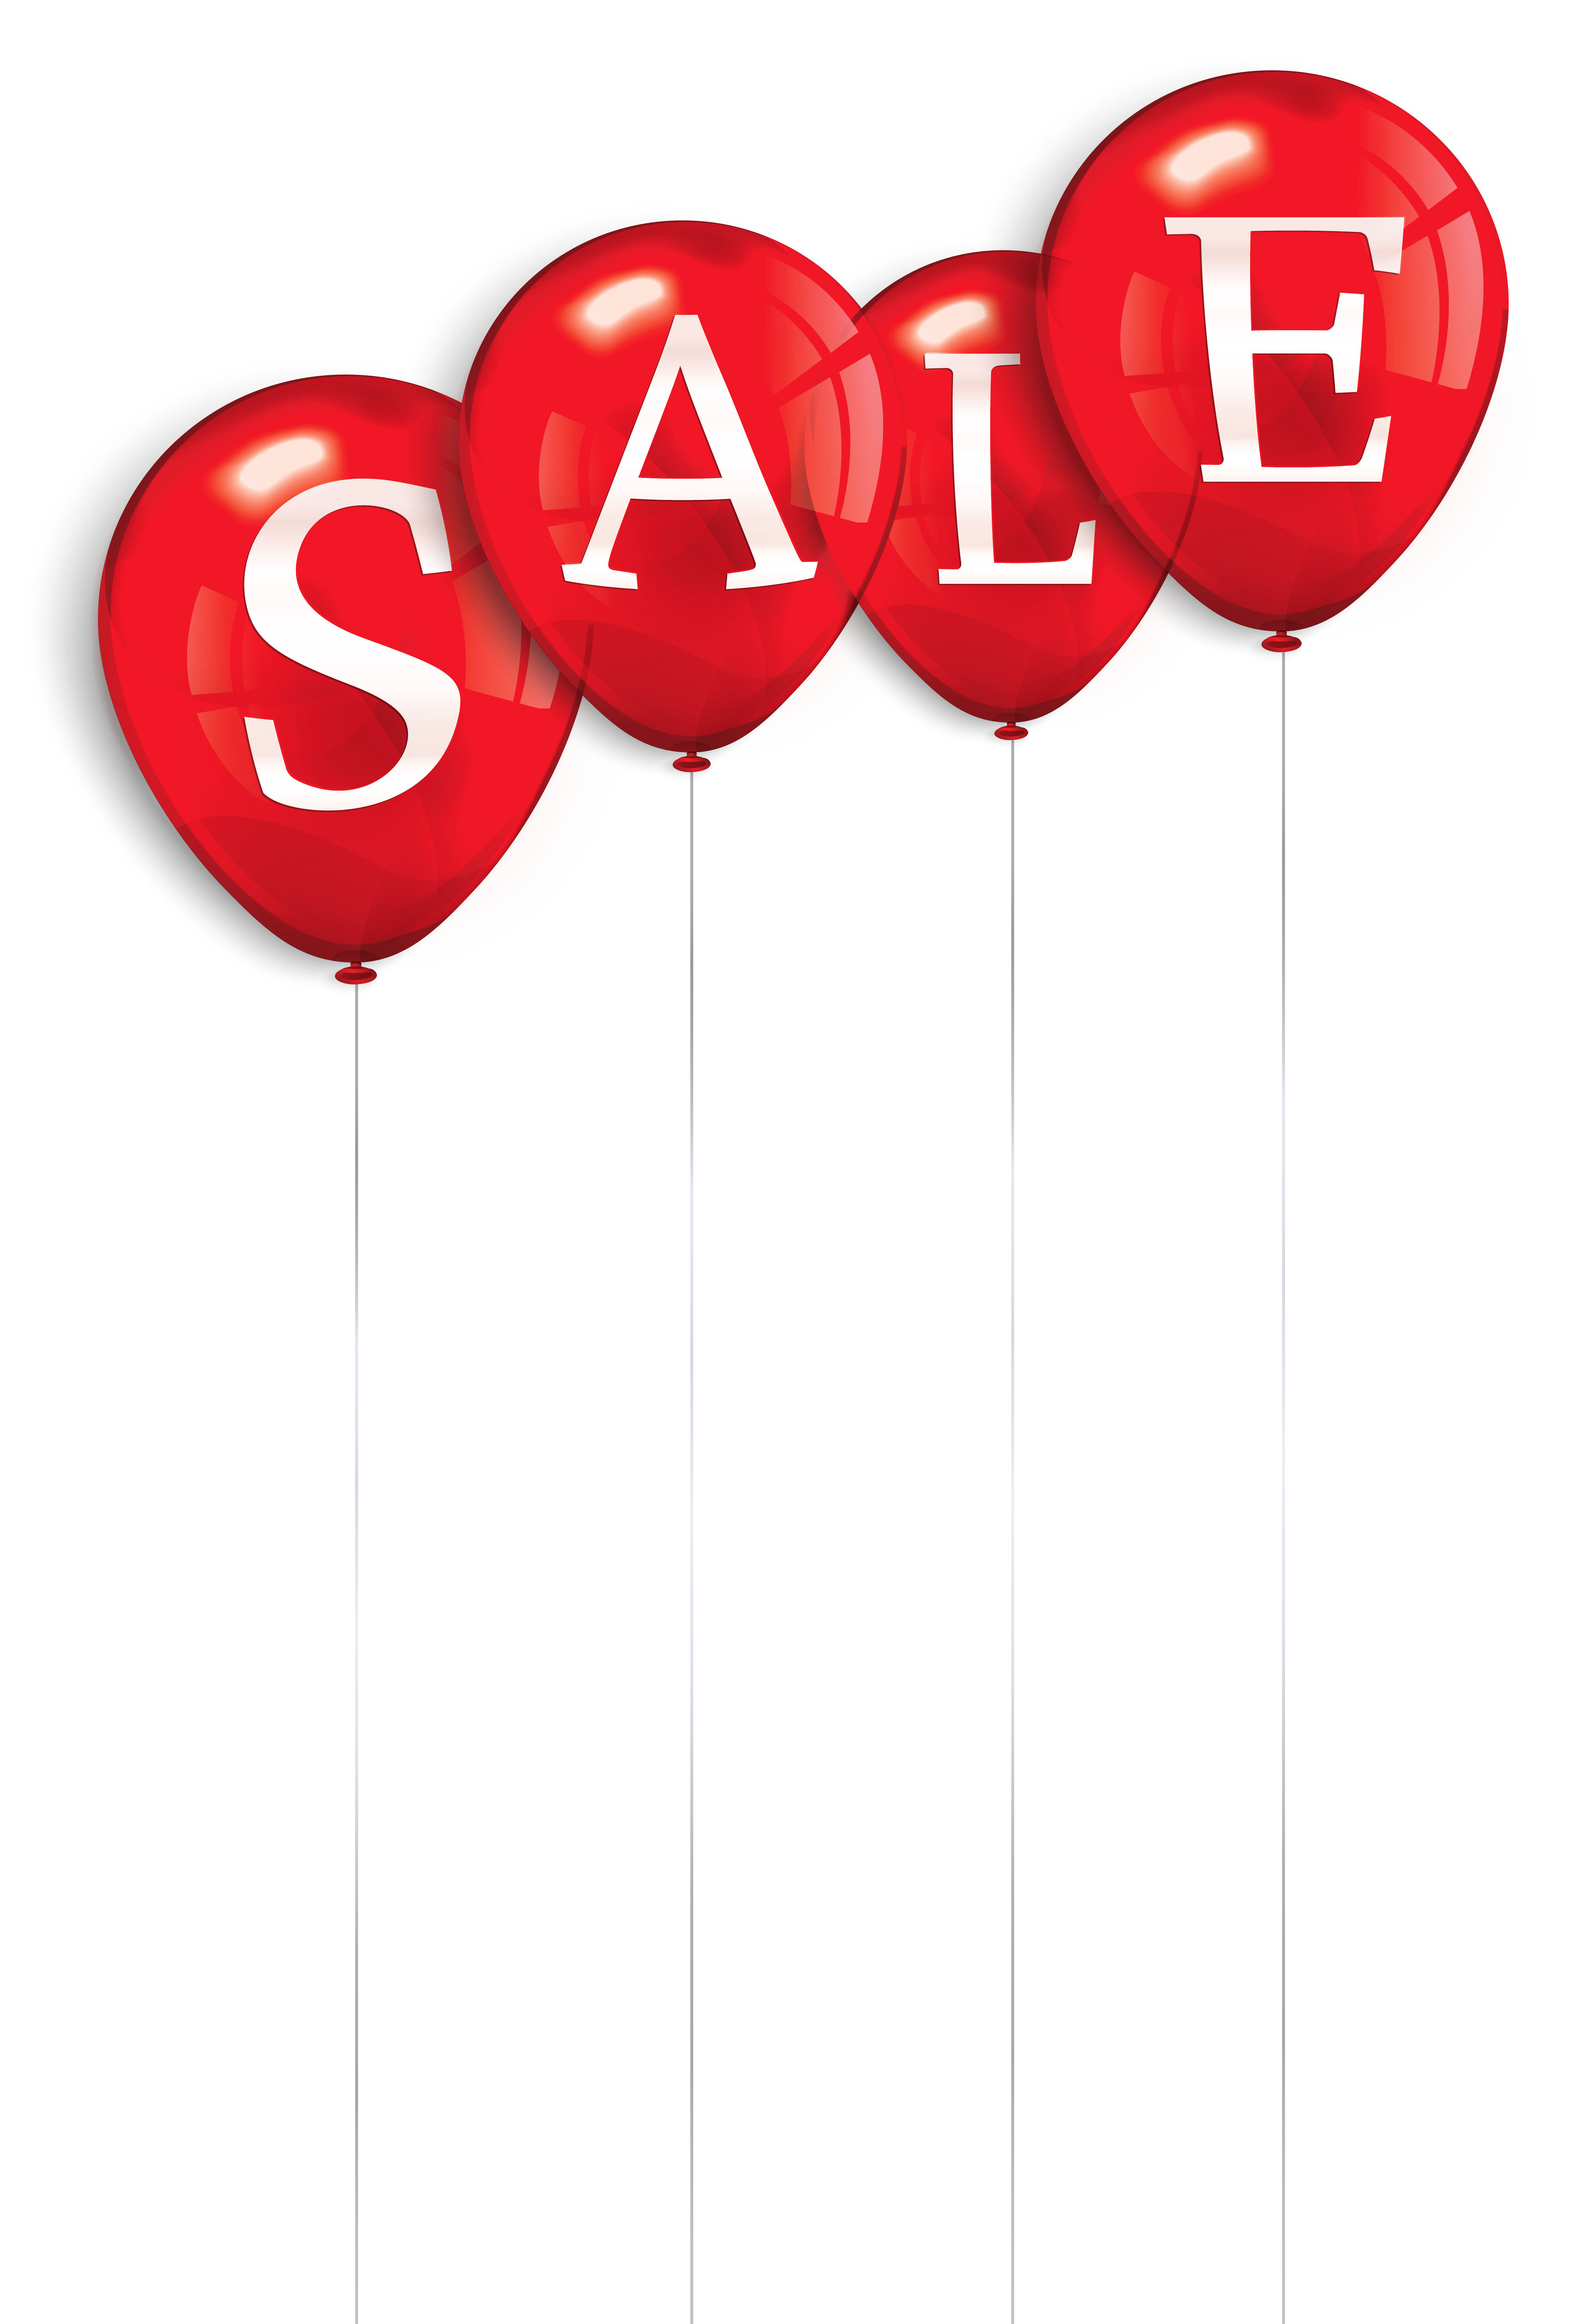 Sale clipart red. Balloons png image gallery